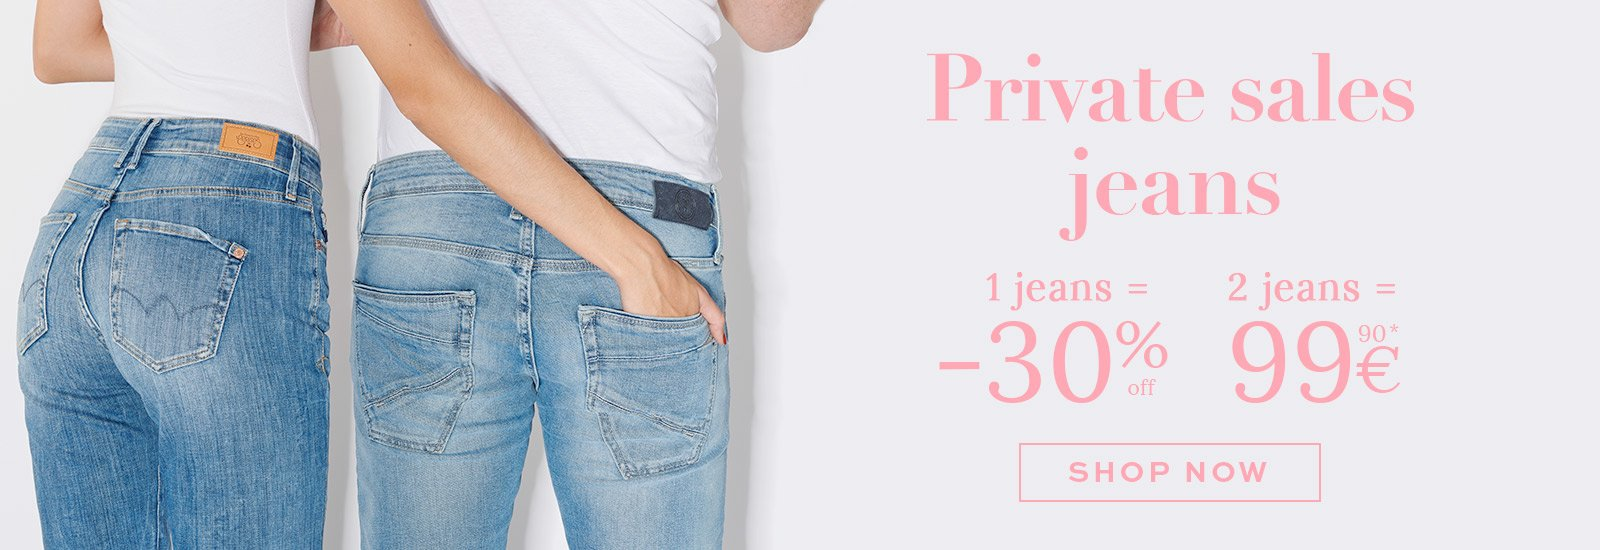 private sales girl